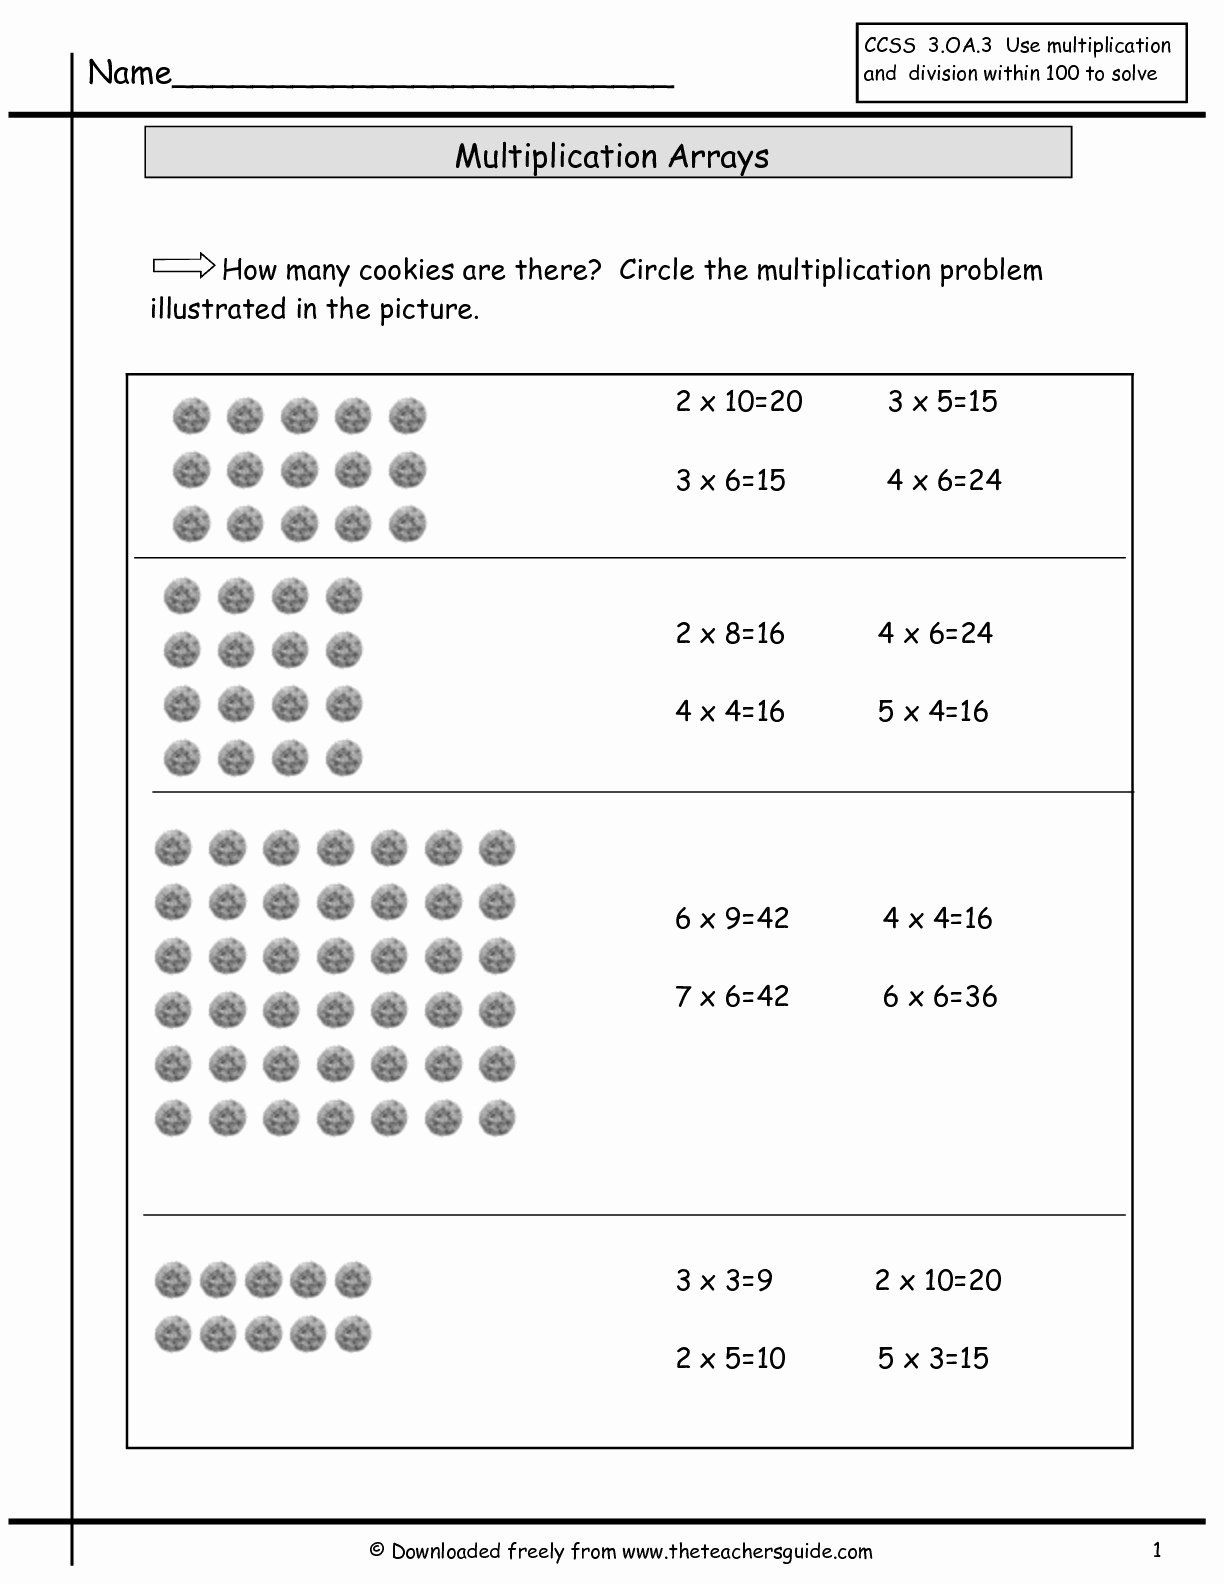 Array Multiplication Worksheets top Multiplication Array Worksheets From the Teachers Guide